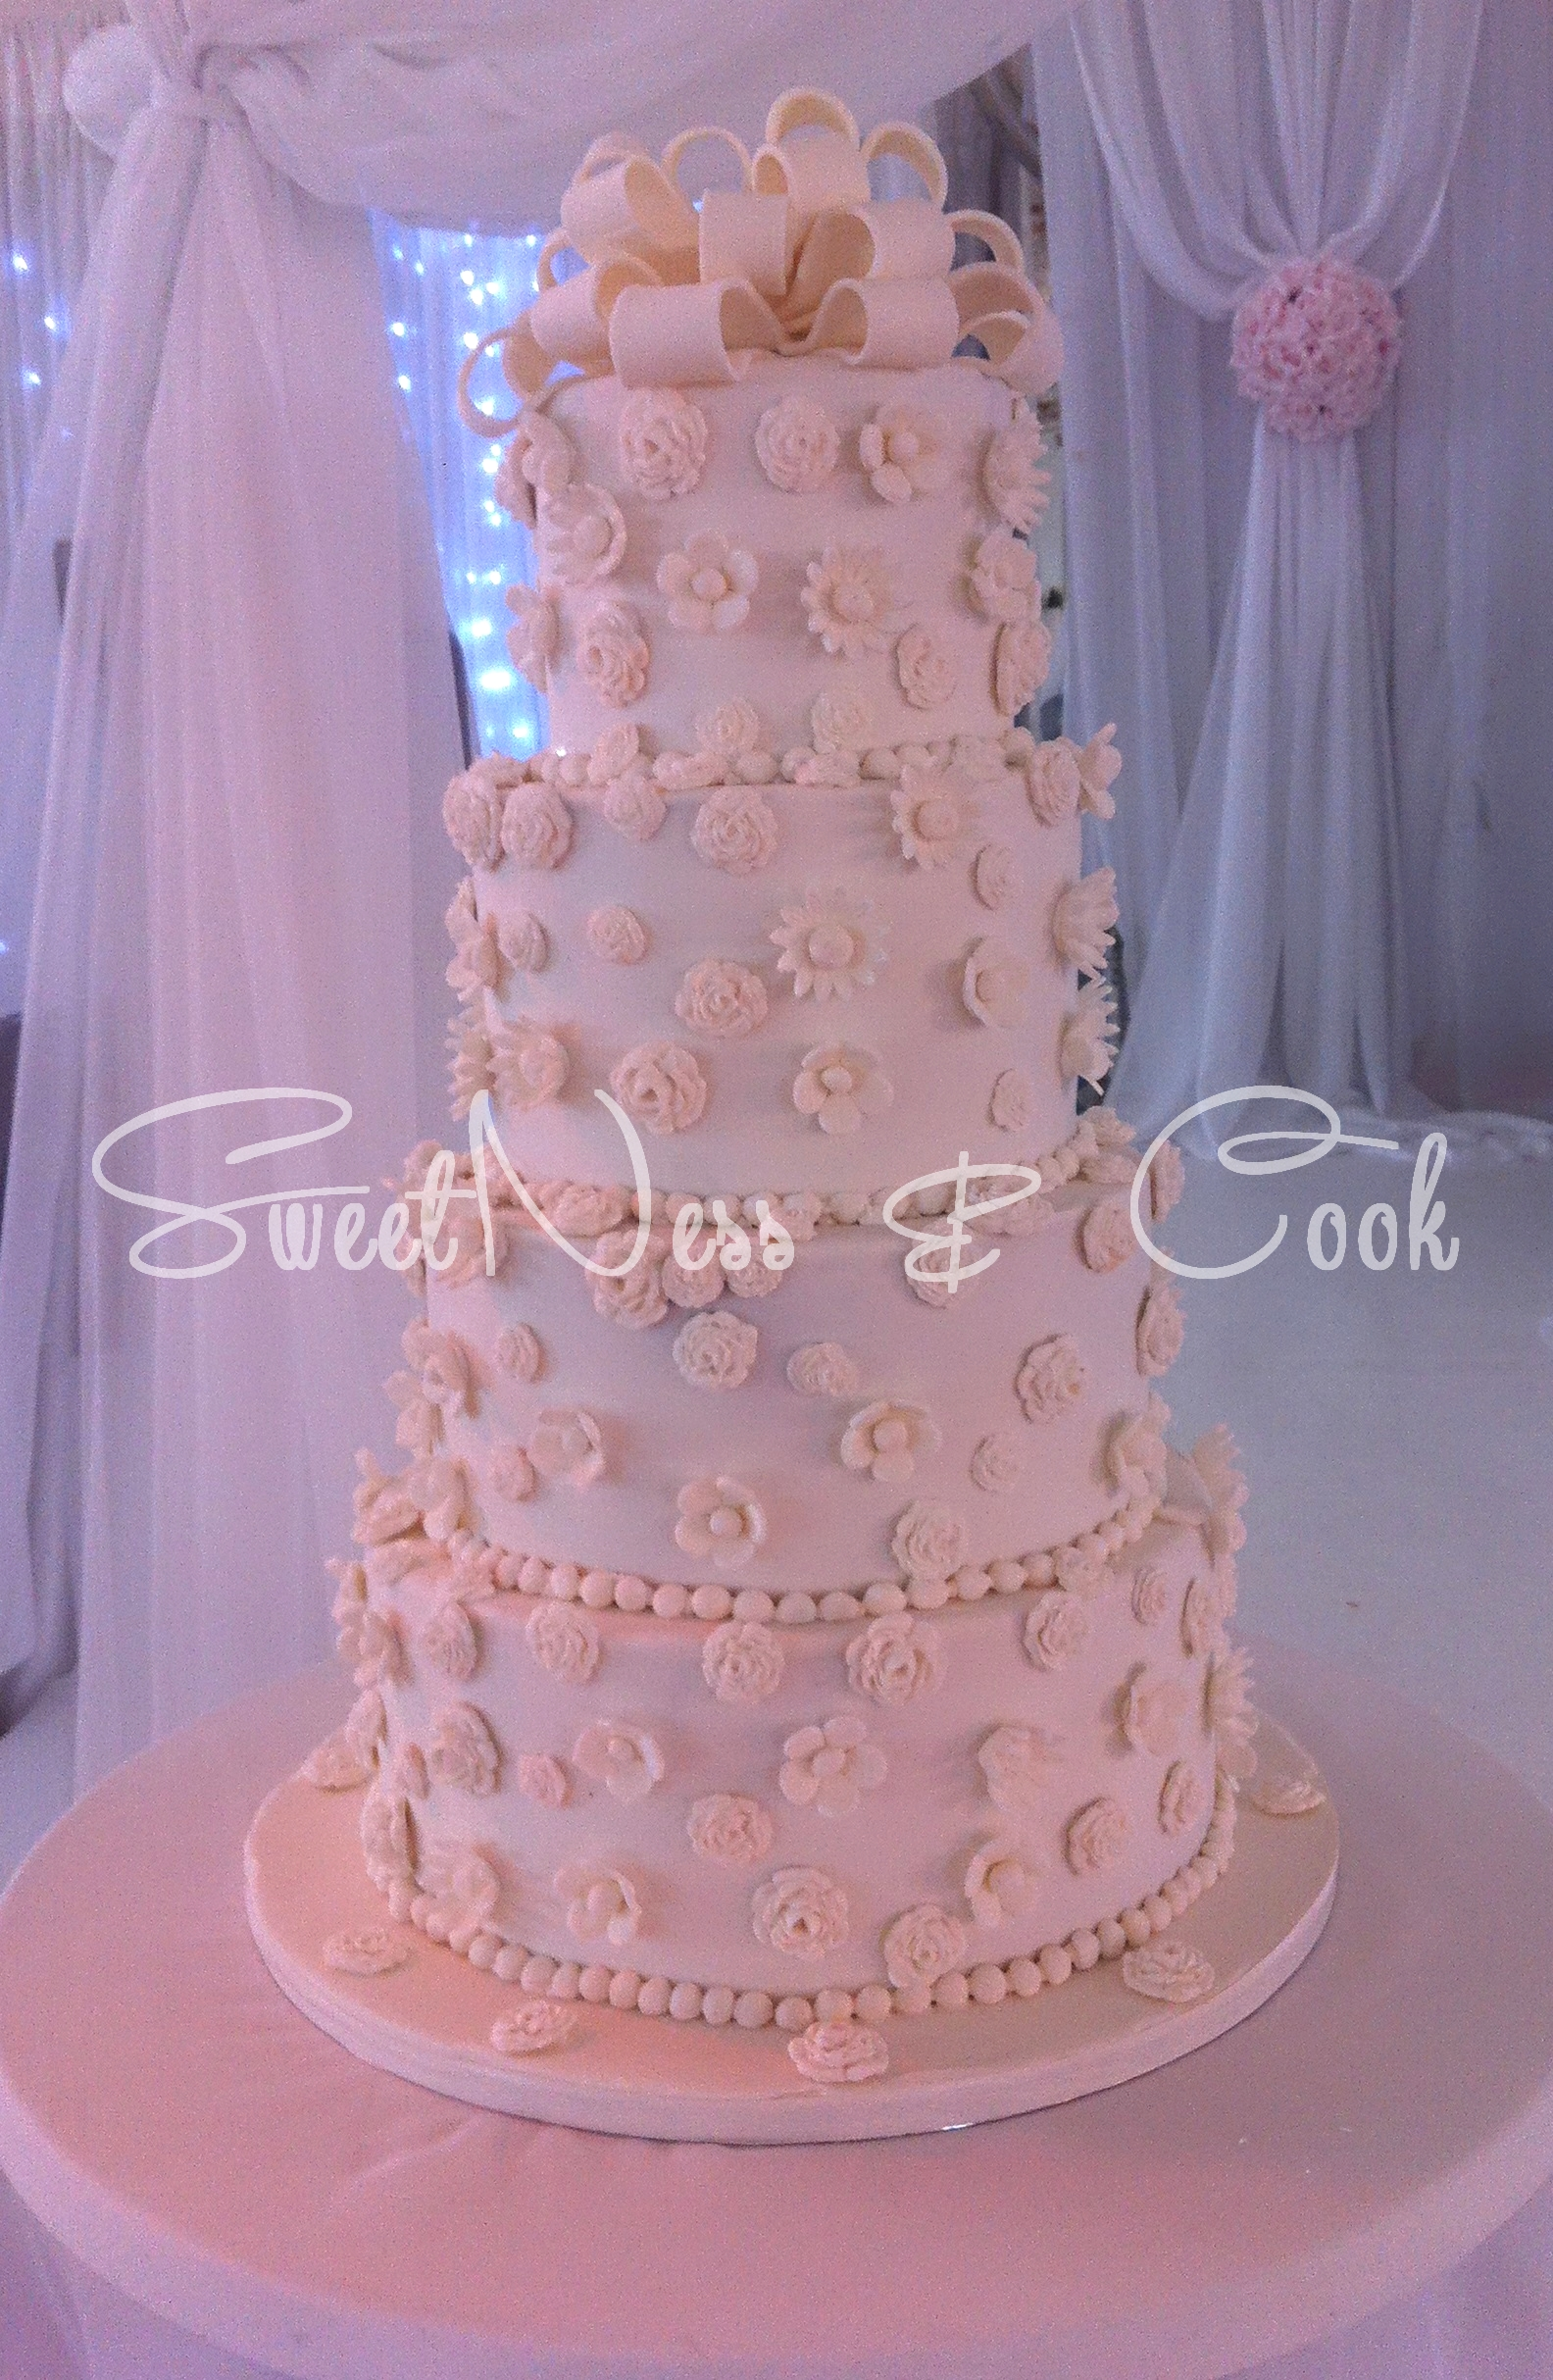 Wedding Cake Le Touquet